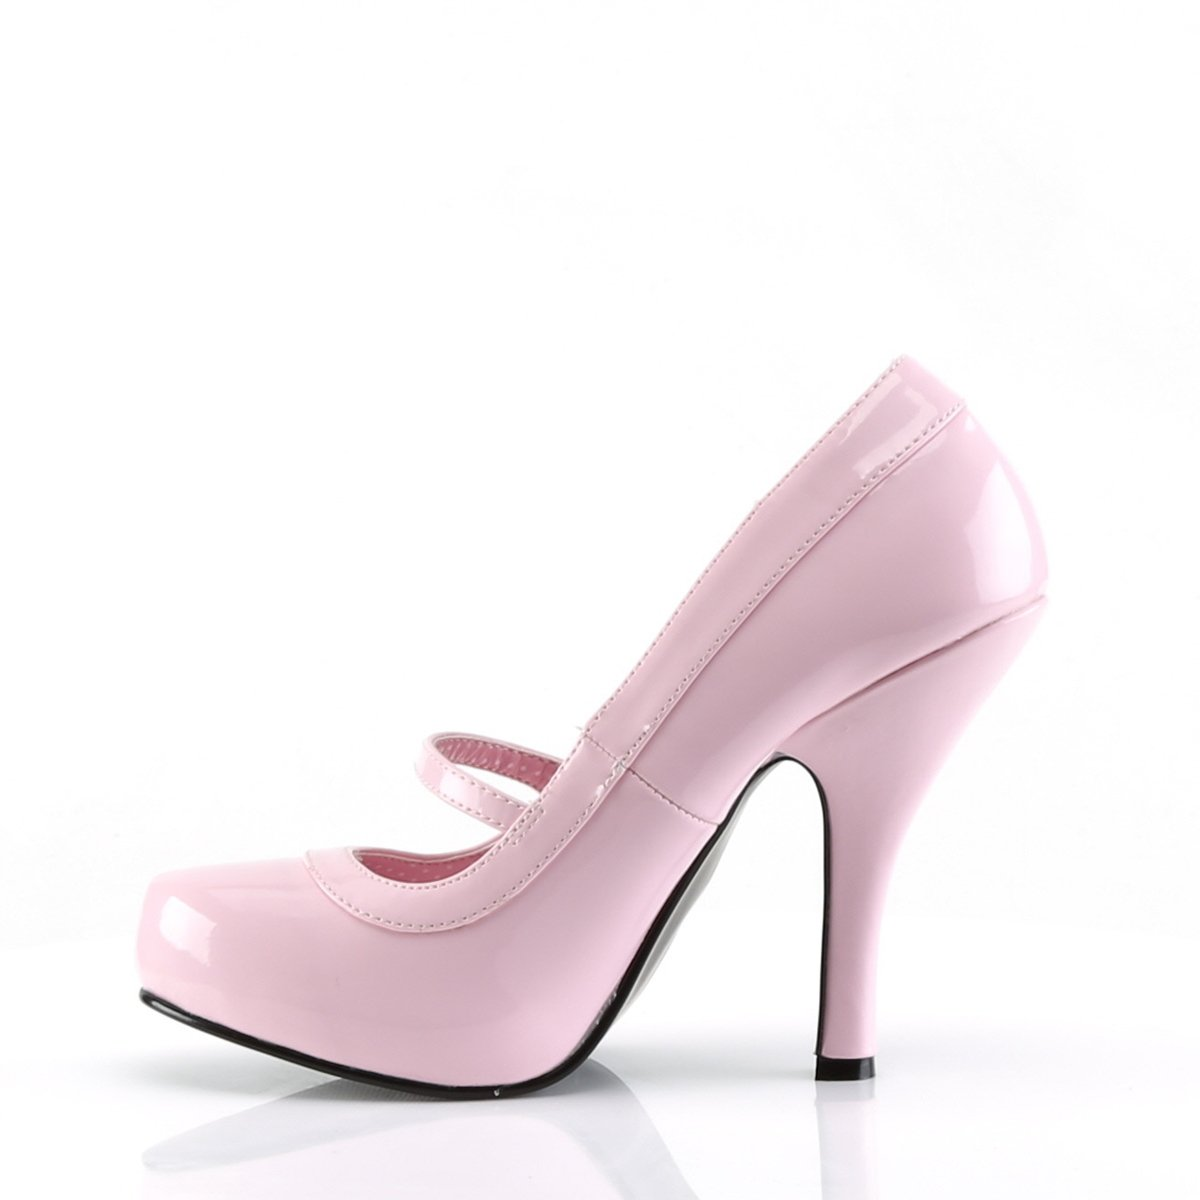 4 1//2 Inch Heel Mary Jane Pump Pinup Couture CUTIEPIE-02